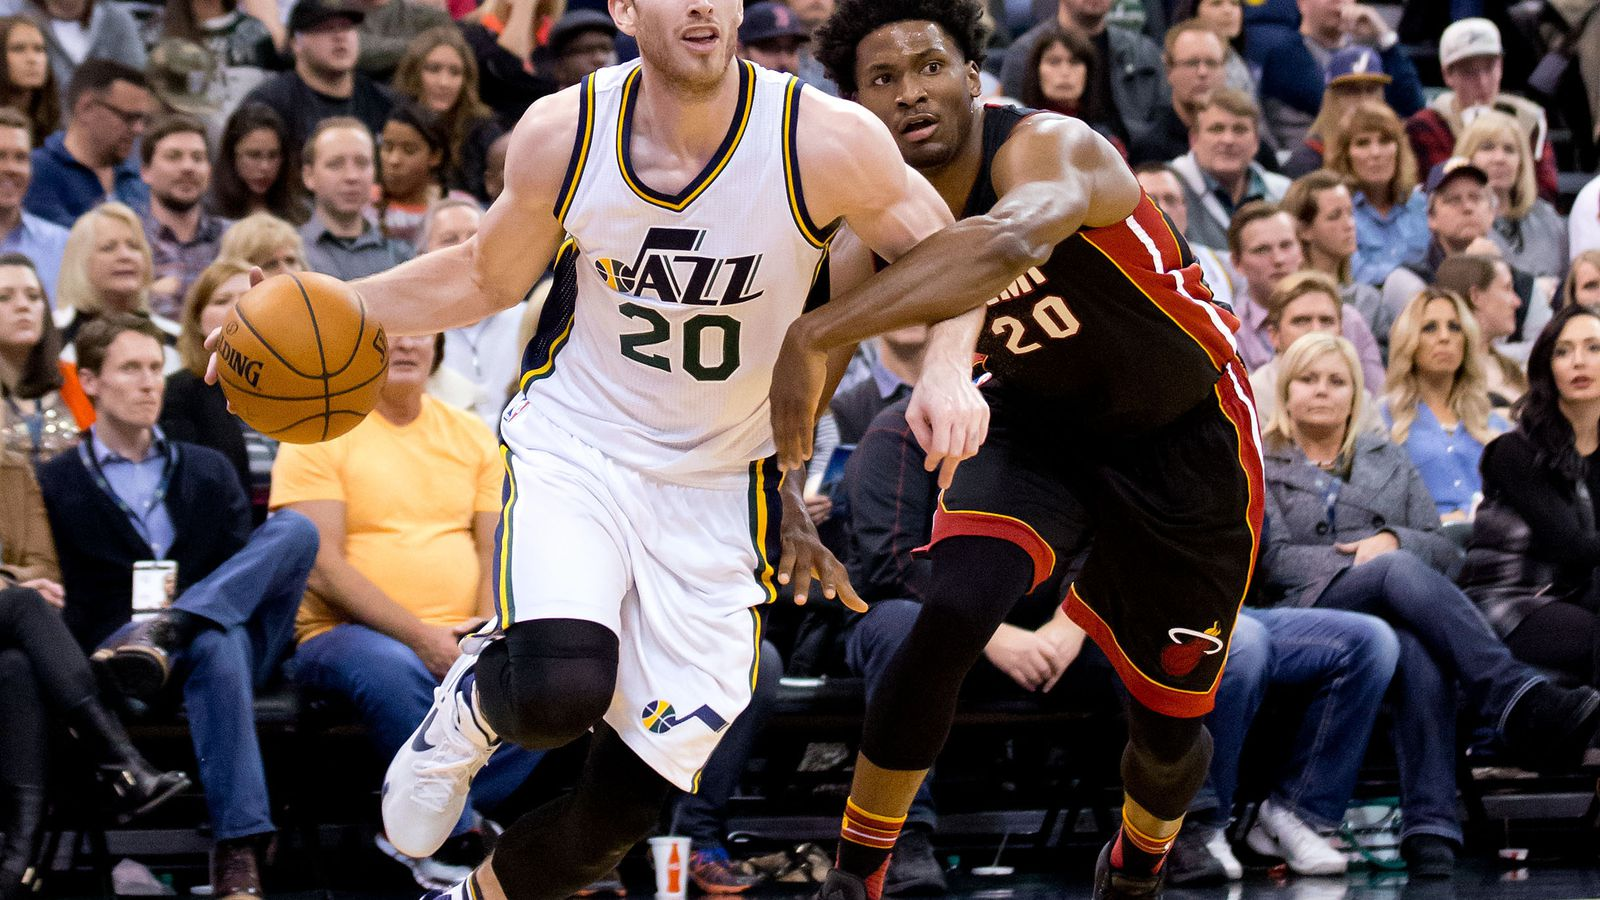 Miami heat updated news - Icym Gordon Hayward S Family Photo Stirs A Frenzy In Salt Lake City And Boston